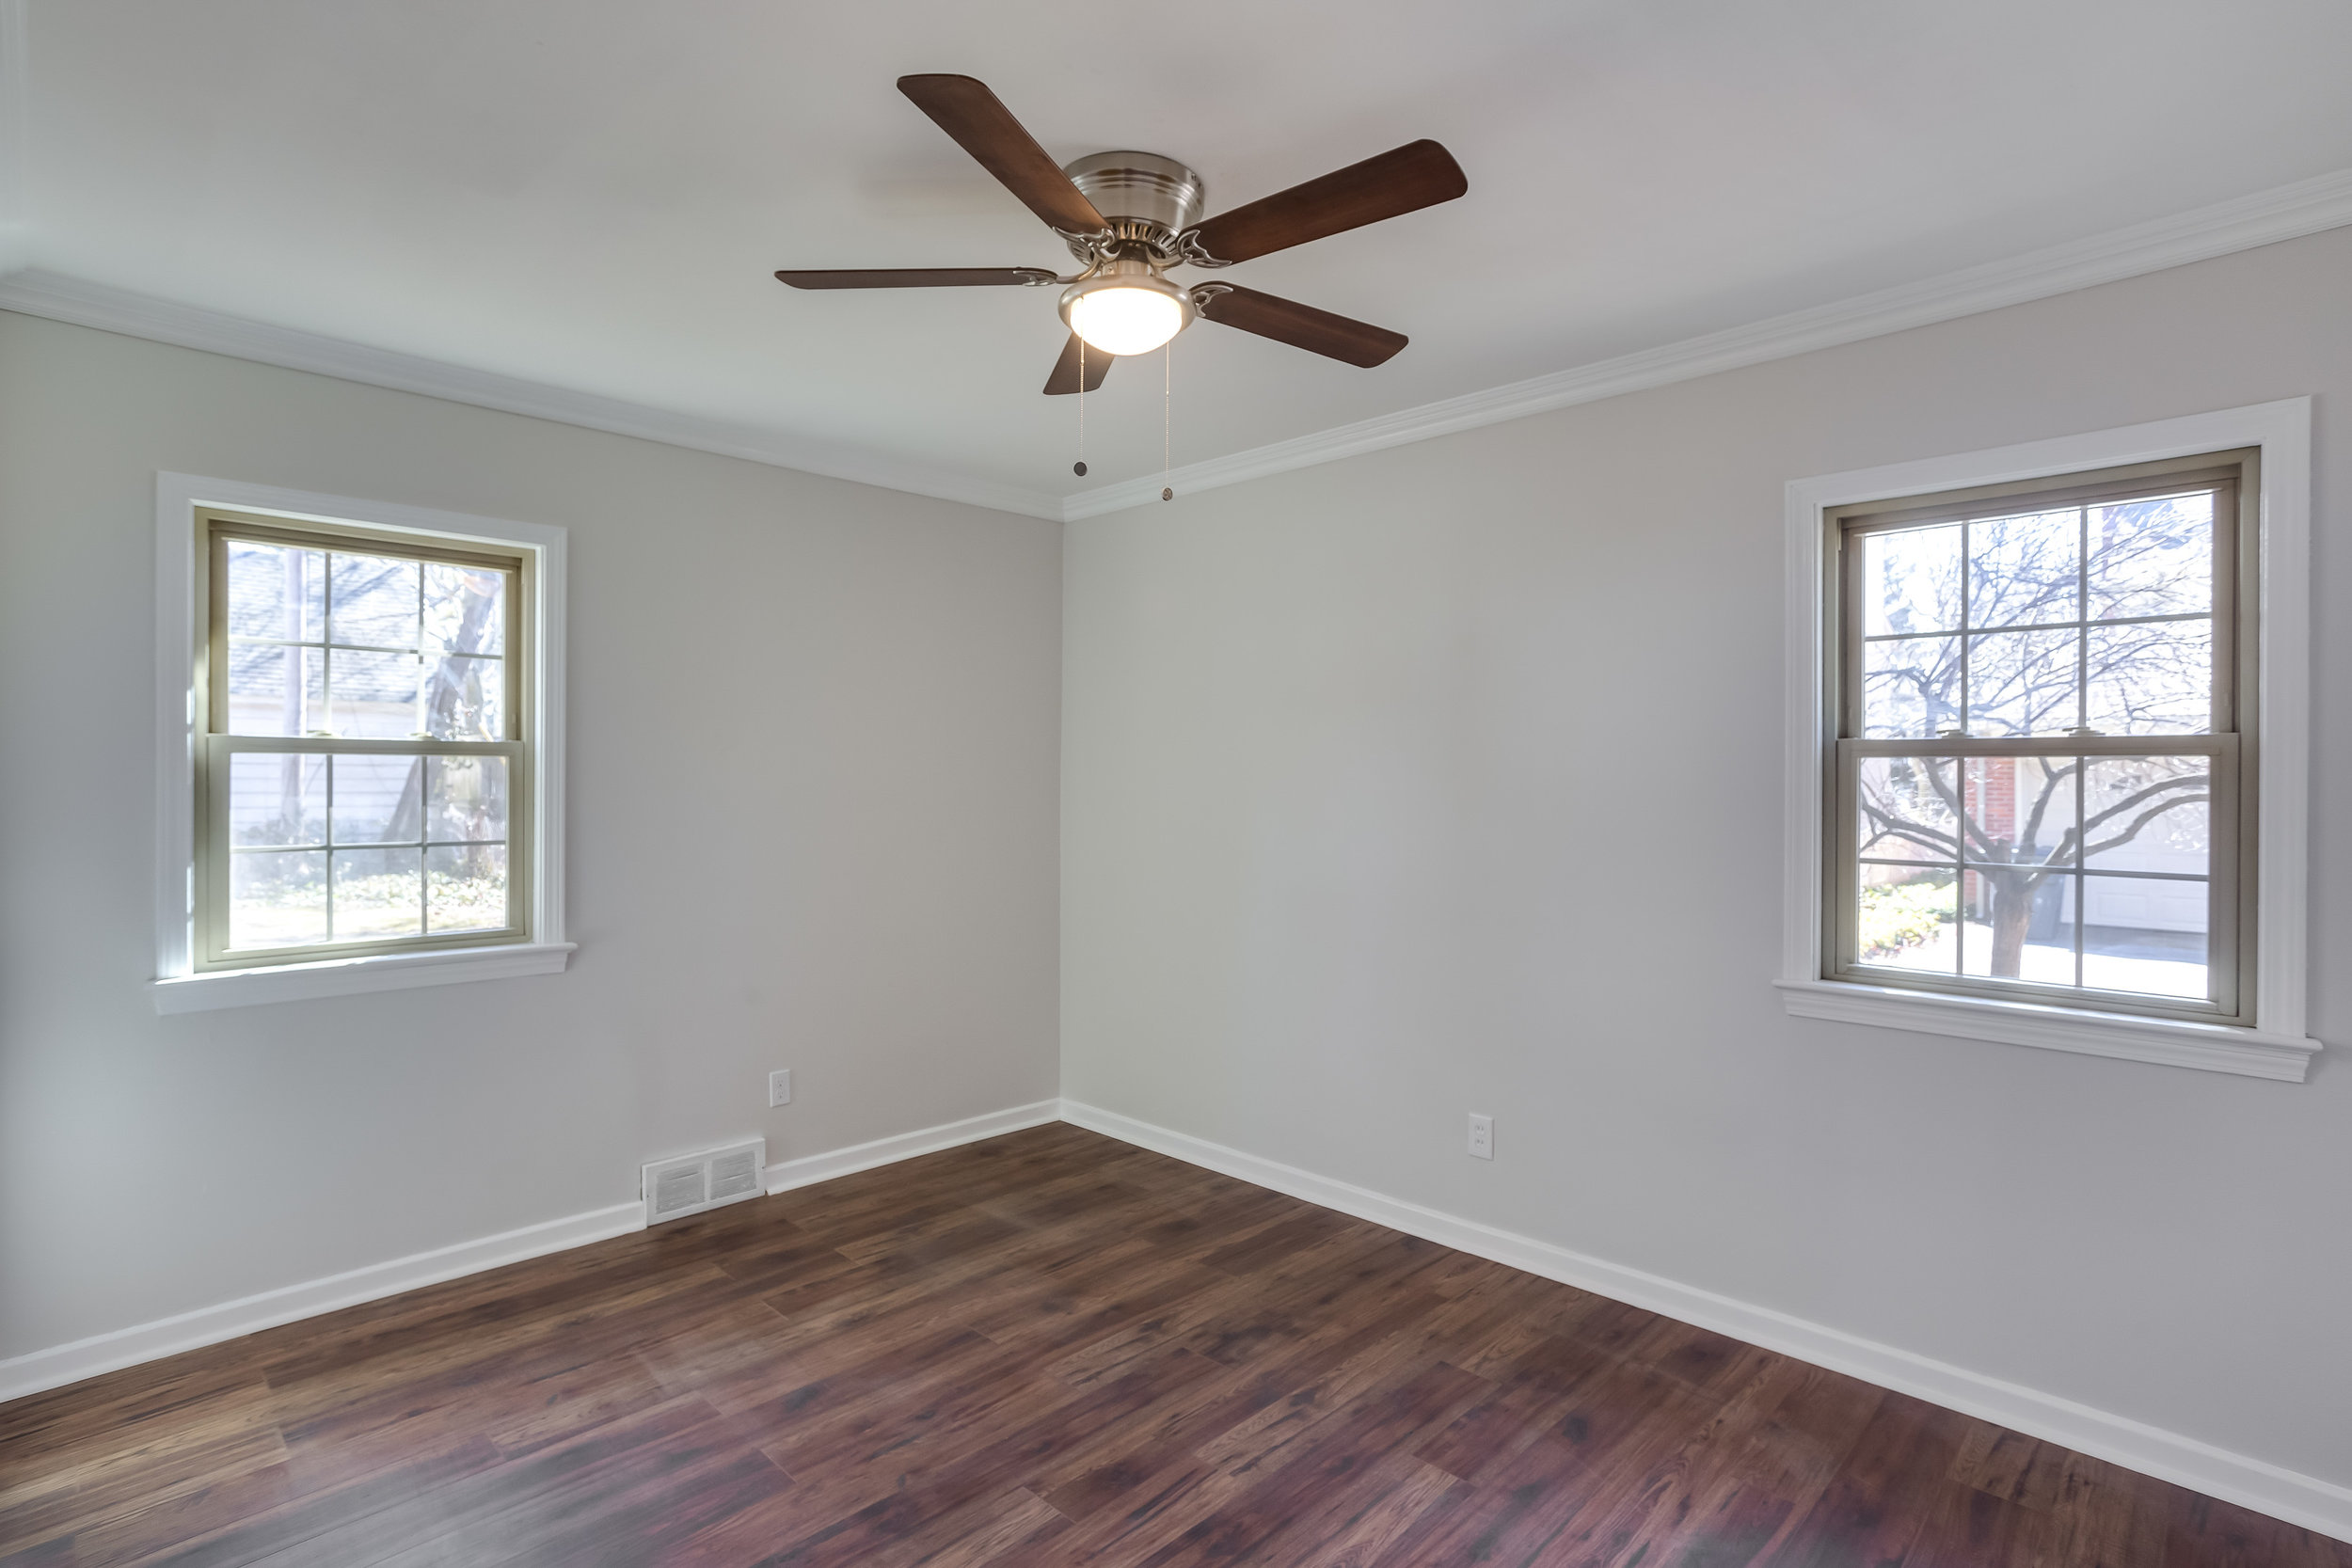 After, the bedroom is clean with fresh paint and new vinyl plank wood floors and a new ceiling fan.